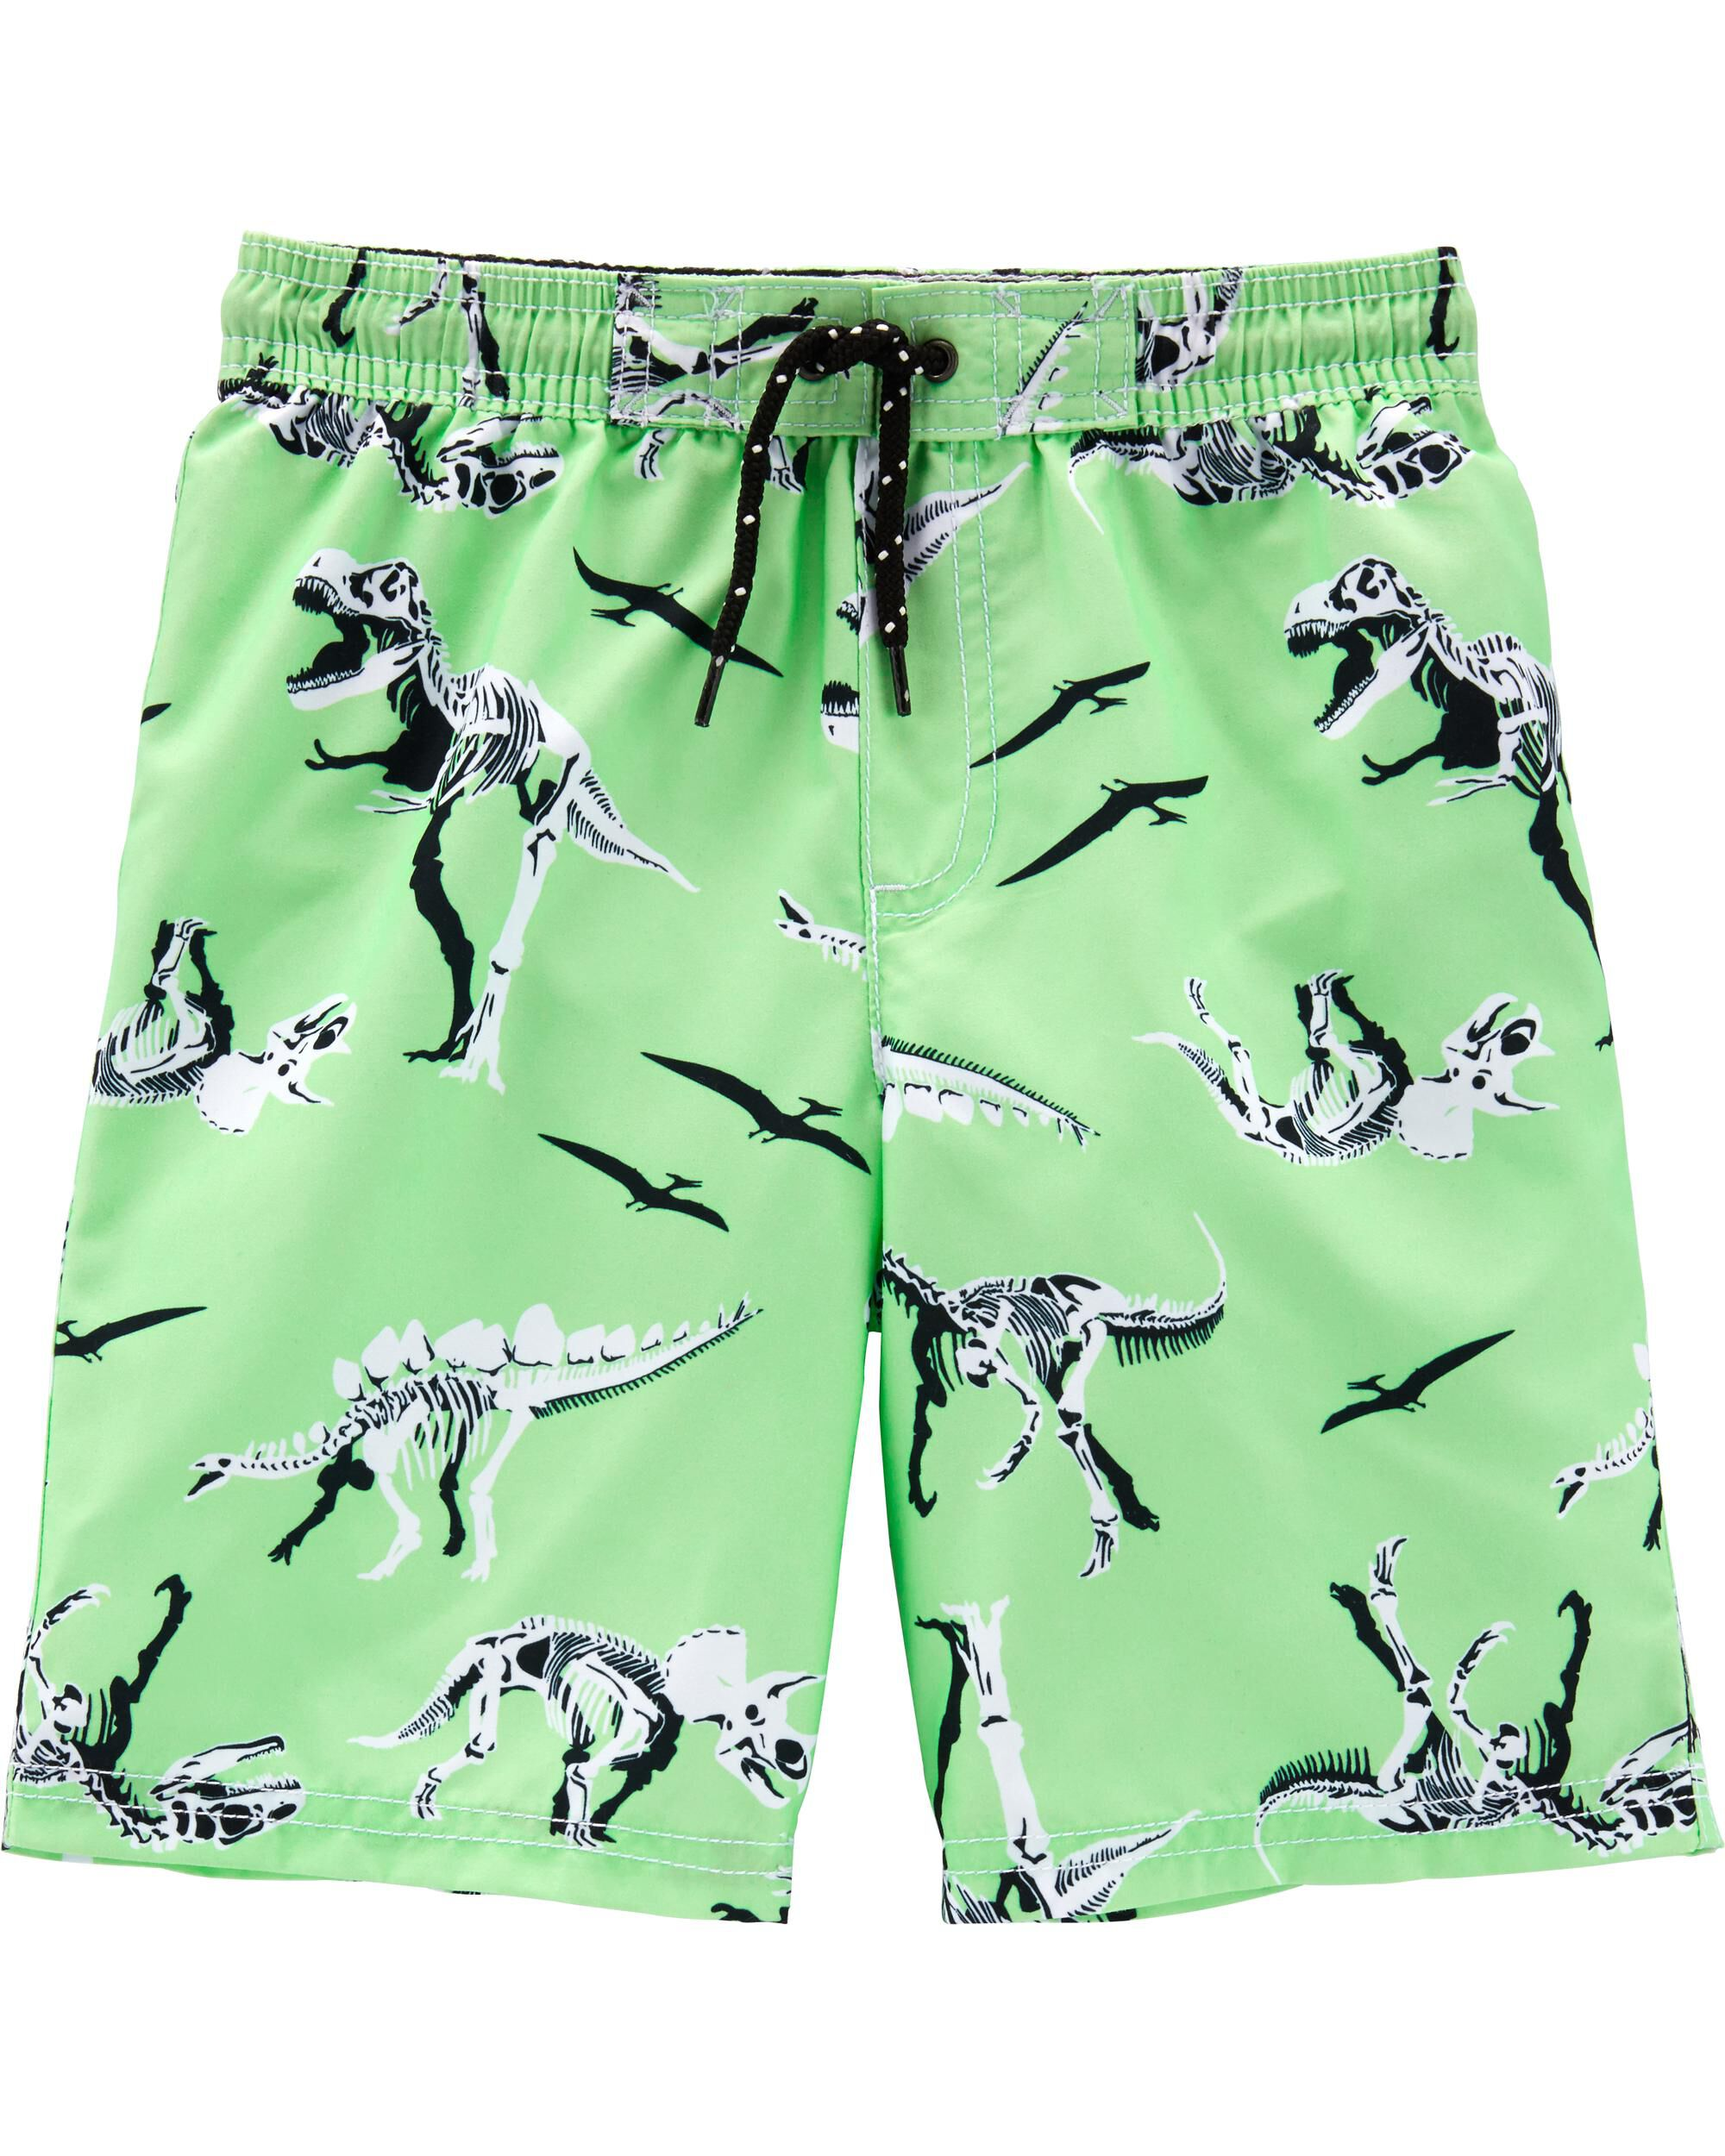 *Clearance*  Carter's Dinosaur Swim Trunks